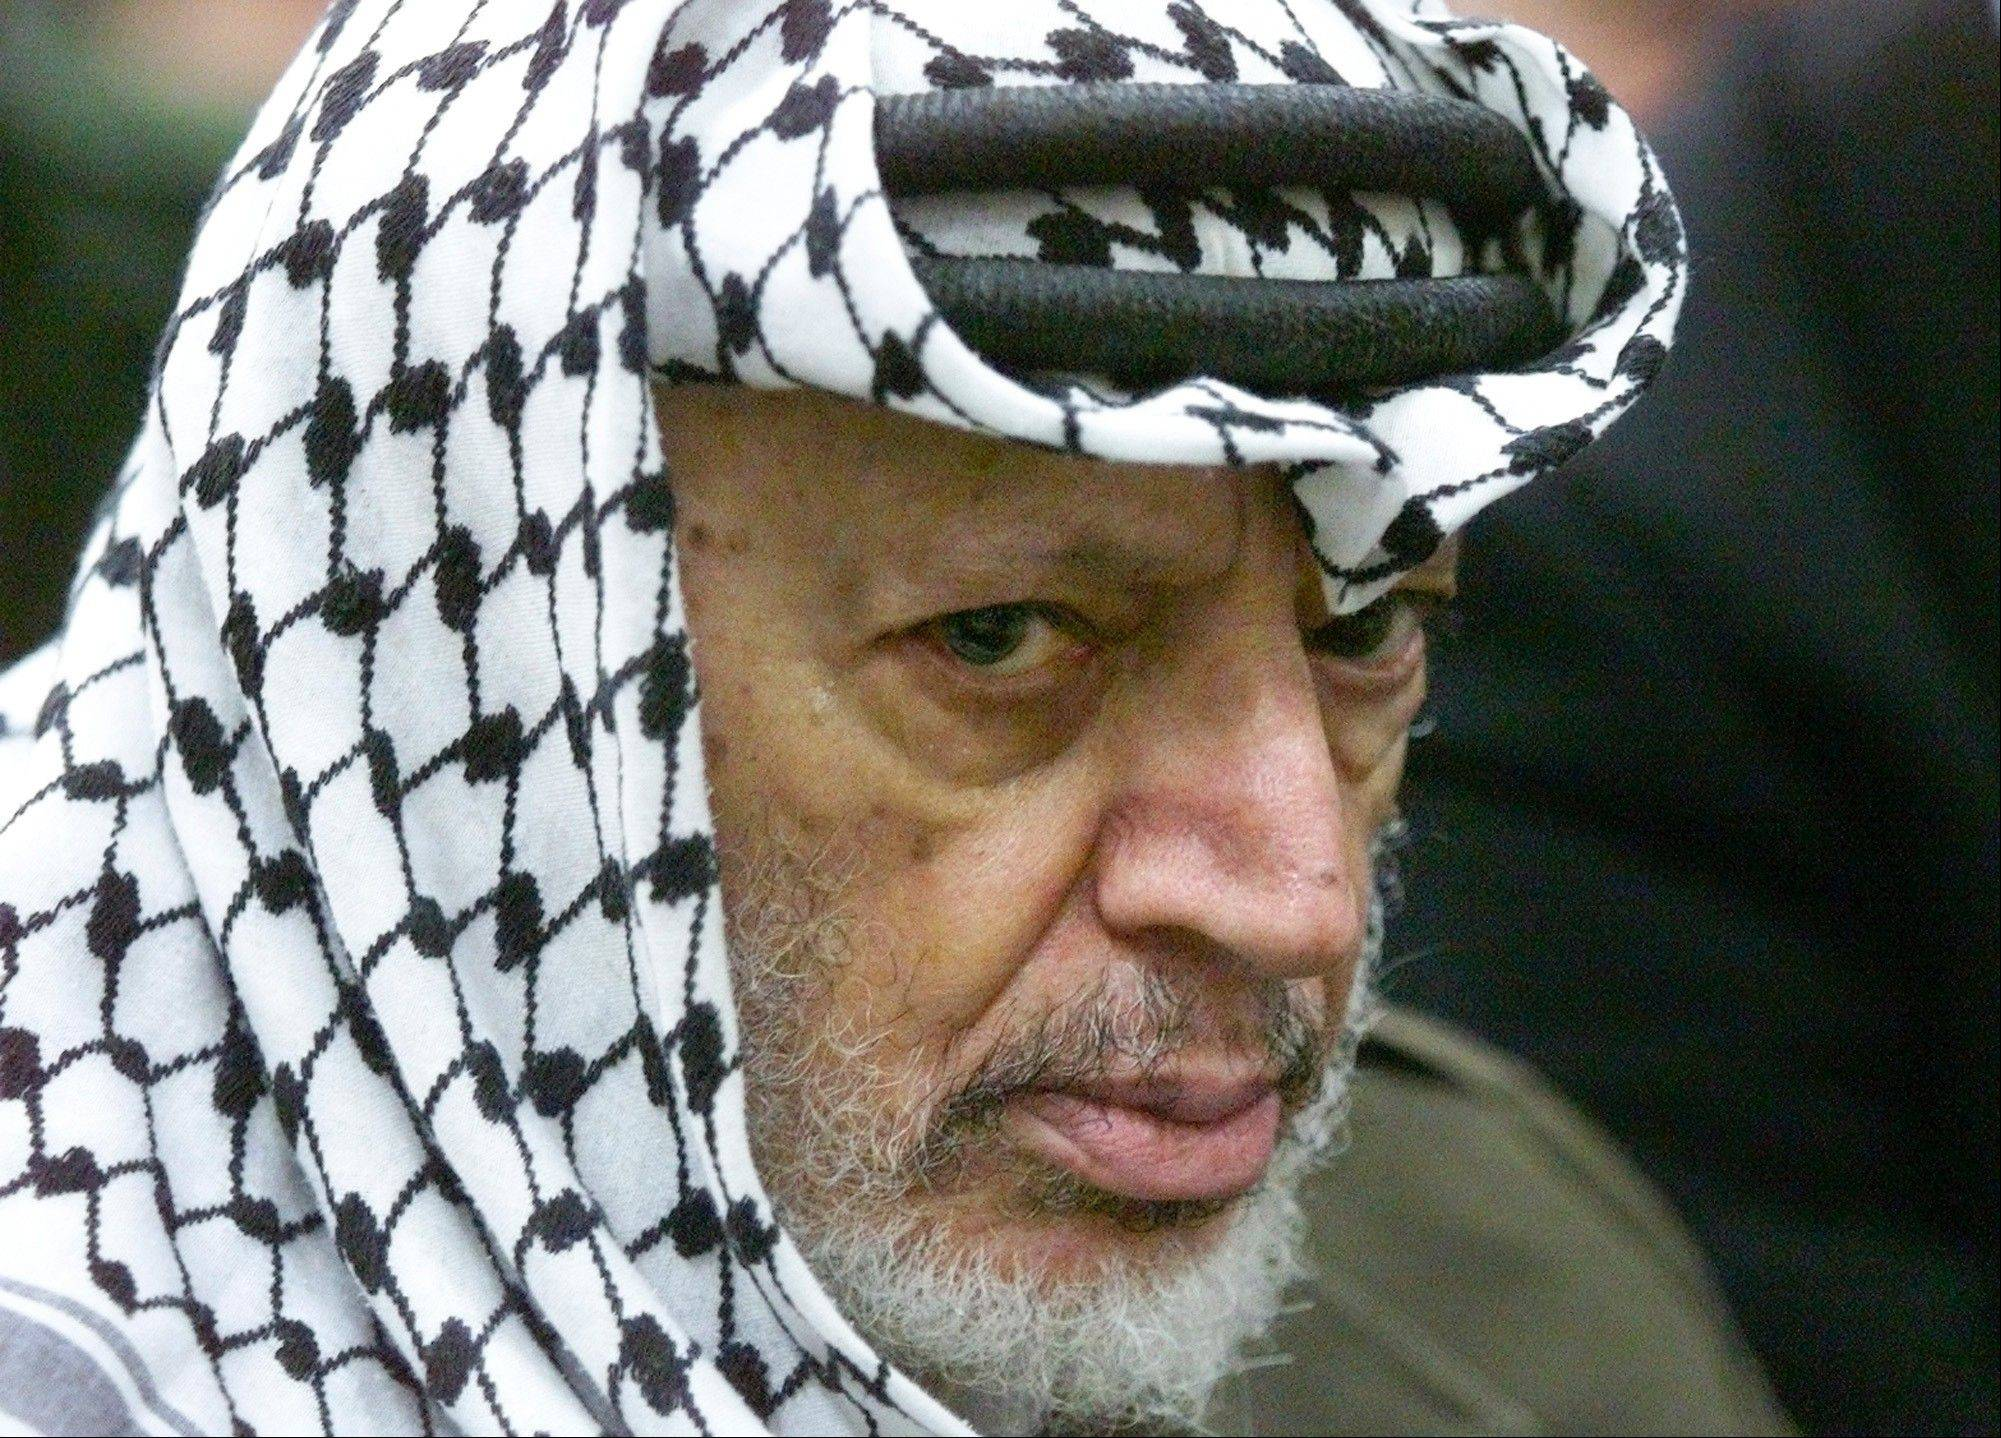 Yasser Arafat�s body will be exhumed to allow for more testing of the causes of his death after getting permission from Palestinian President Mahmoud Abbas.